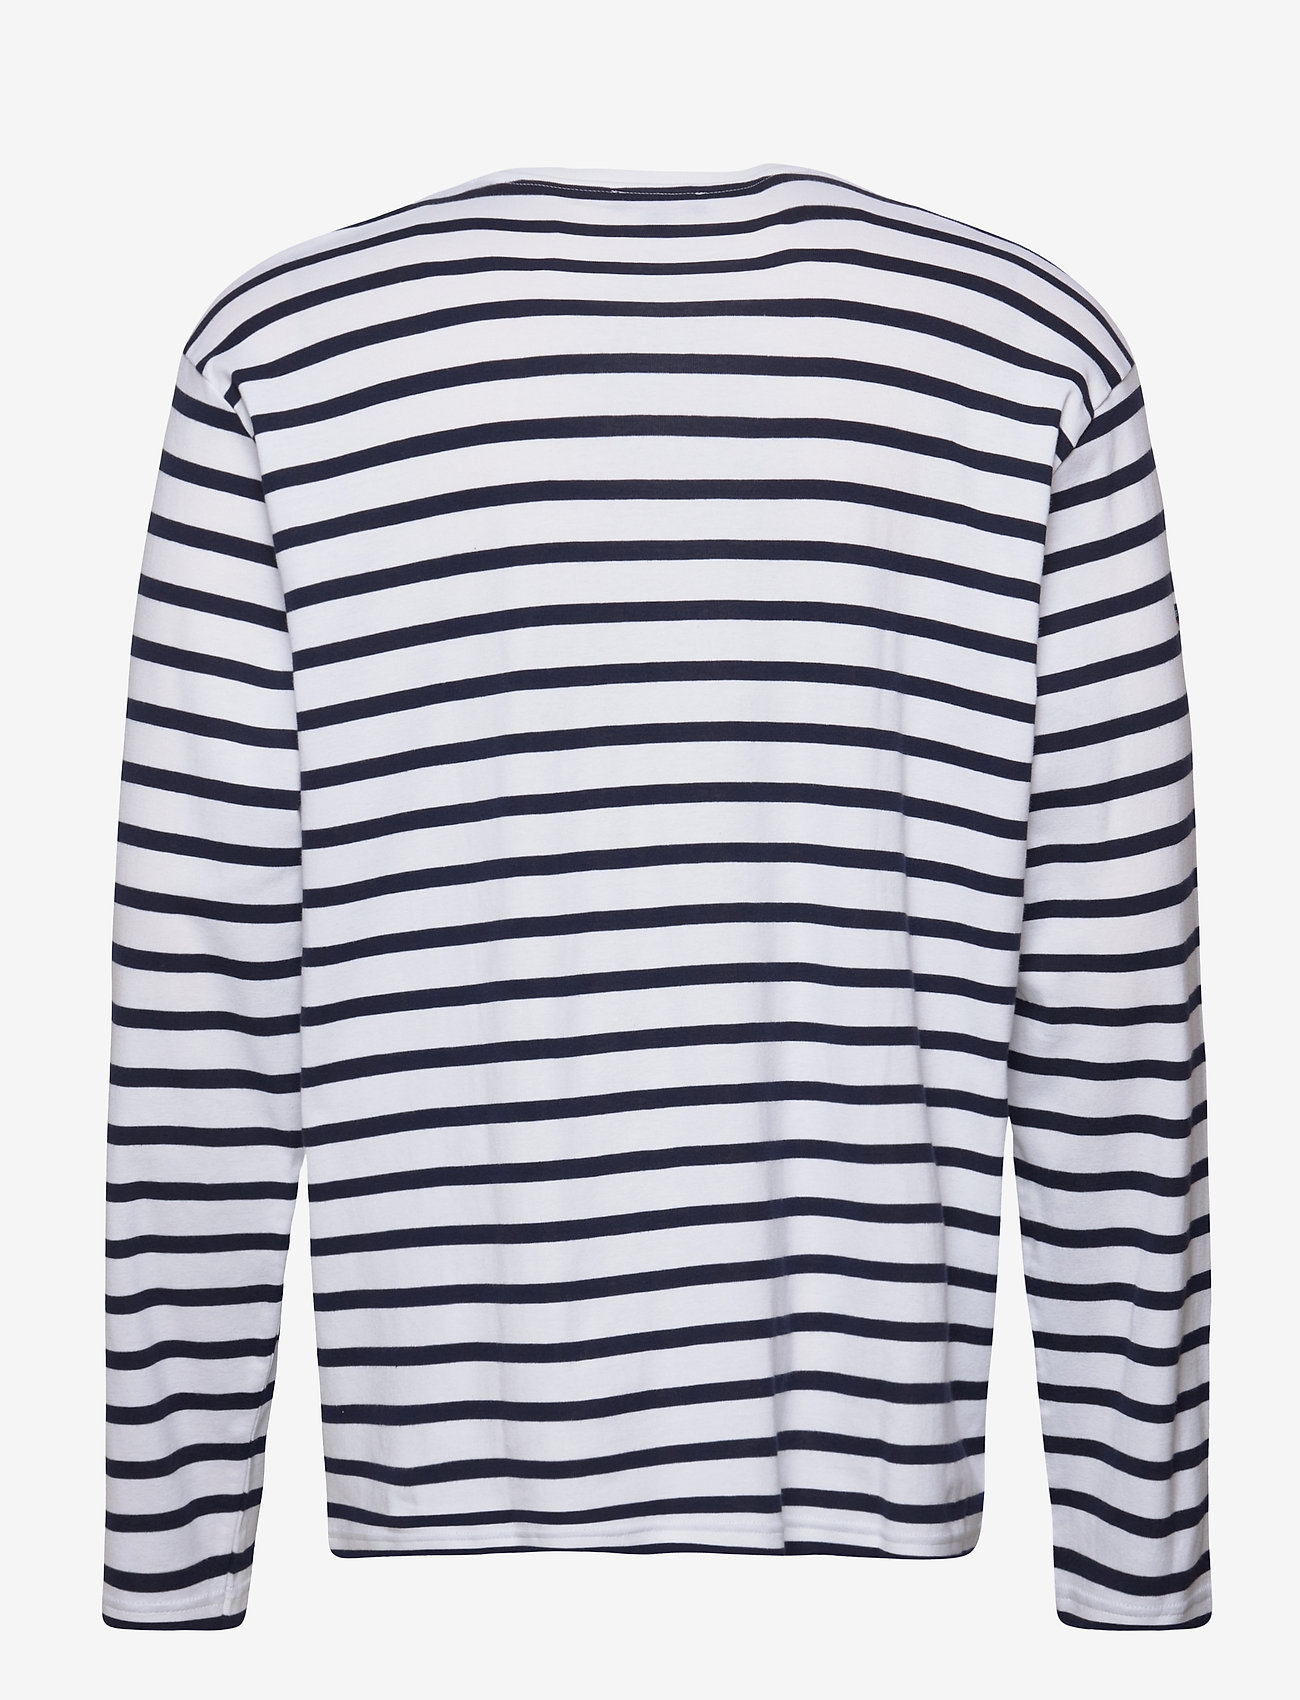 This Affordable T-Shirt Trend Is So French